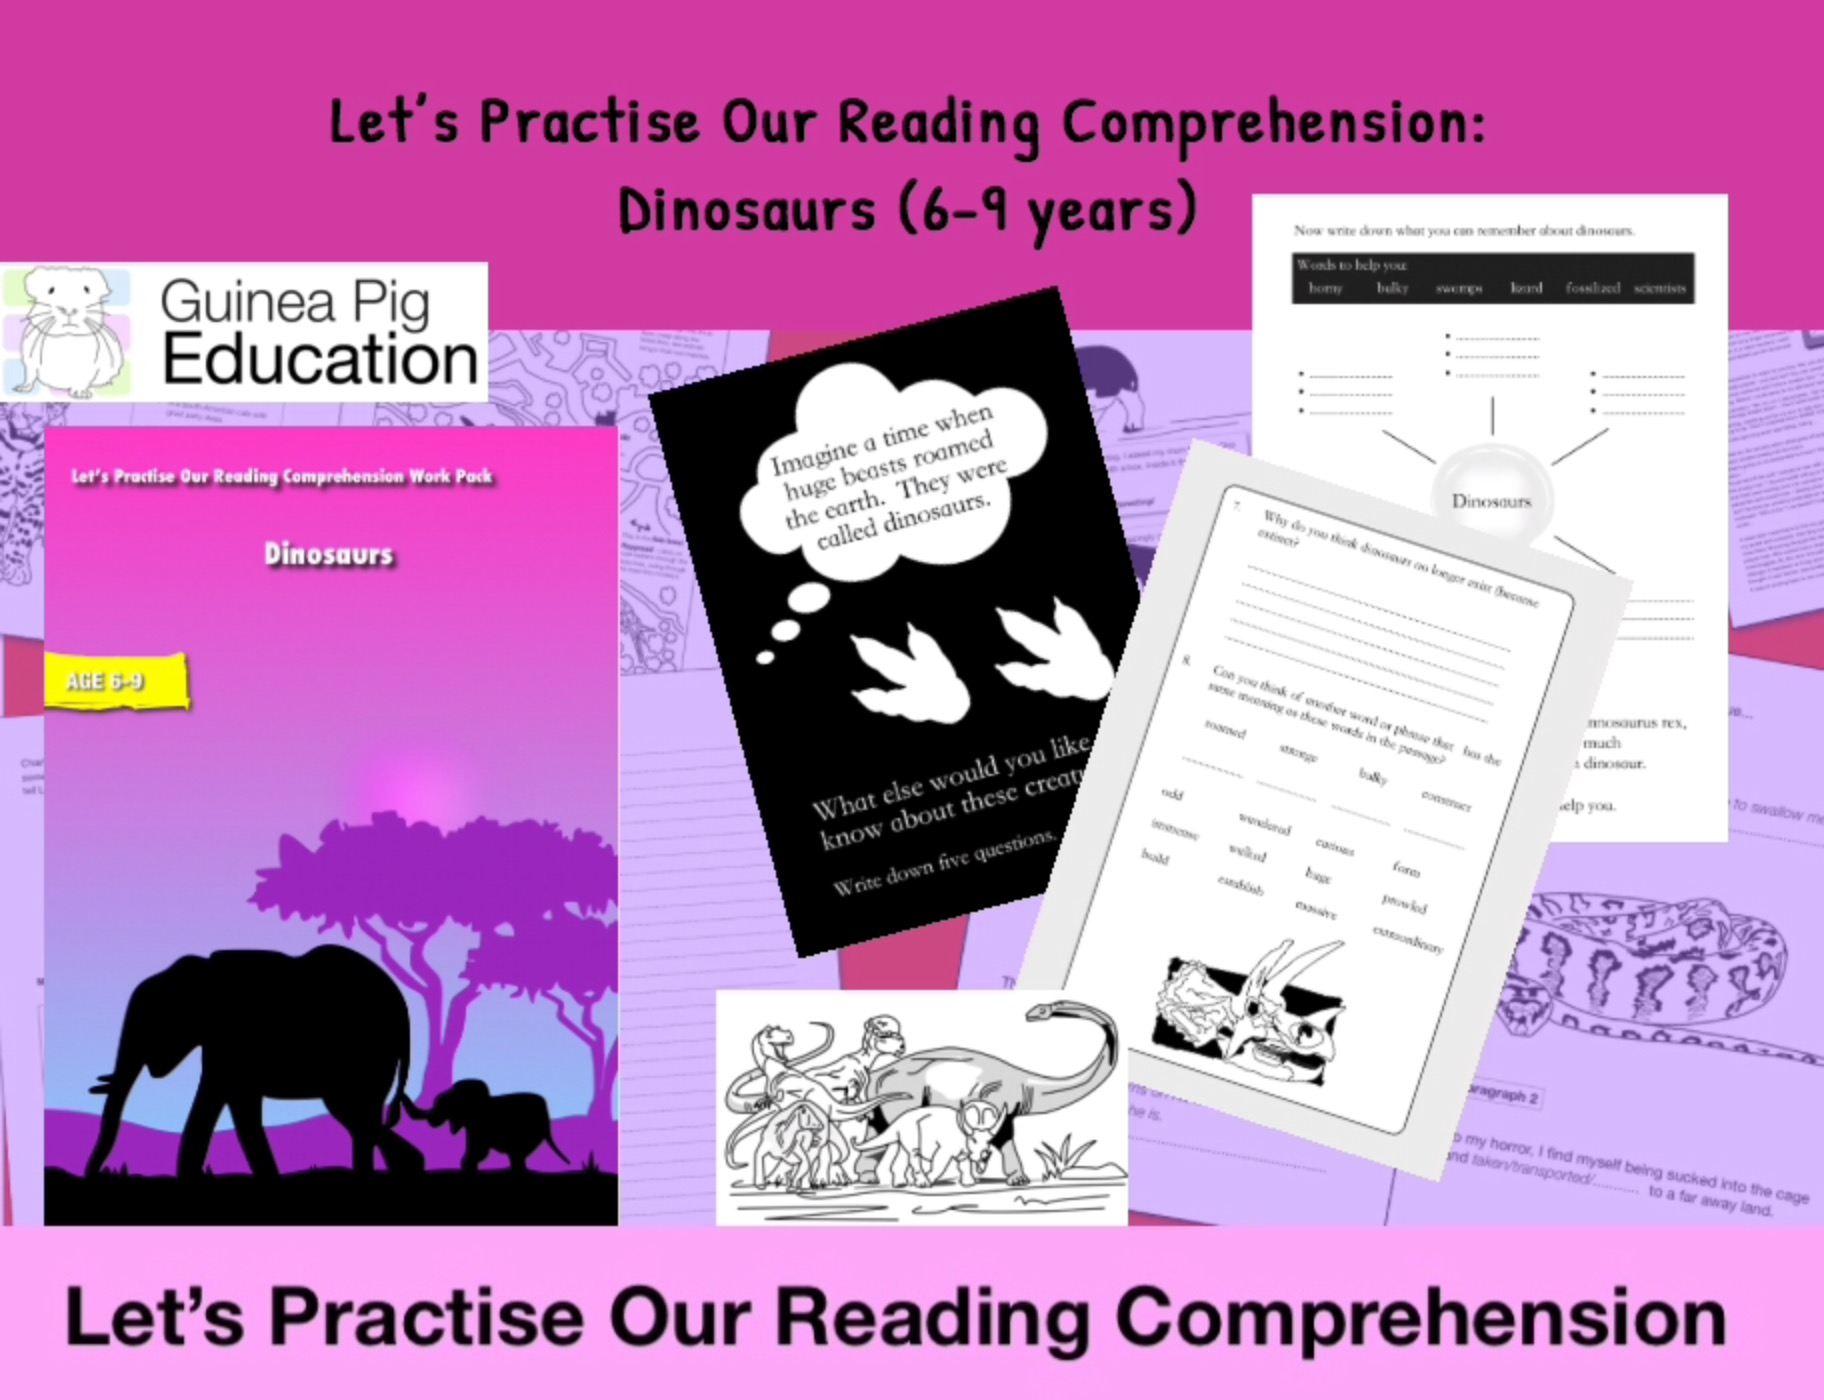 Let's Practise Our Reading Comprehension: Dinosaurs (6-9 years)